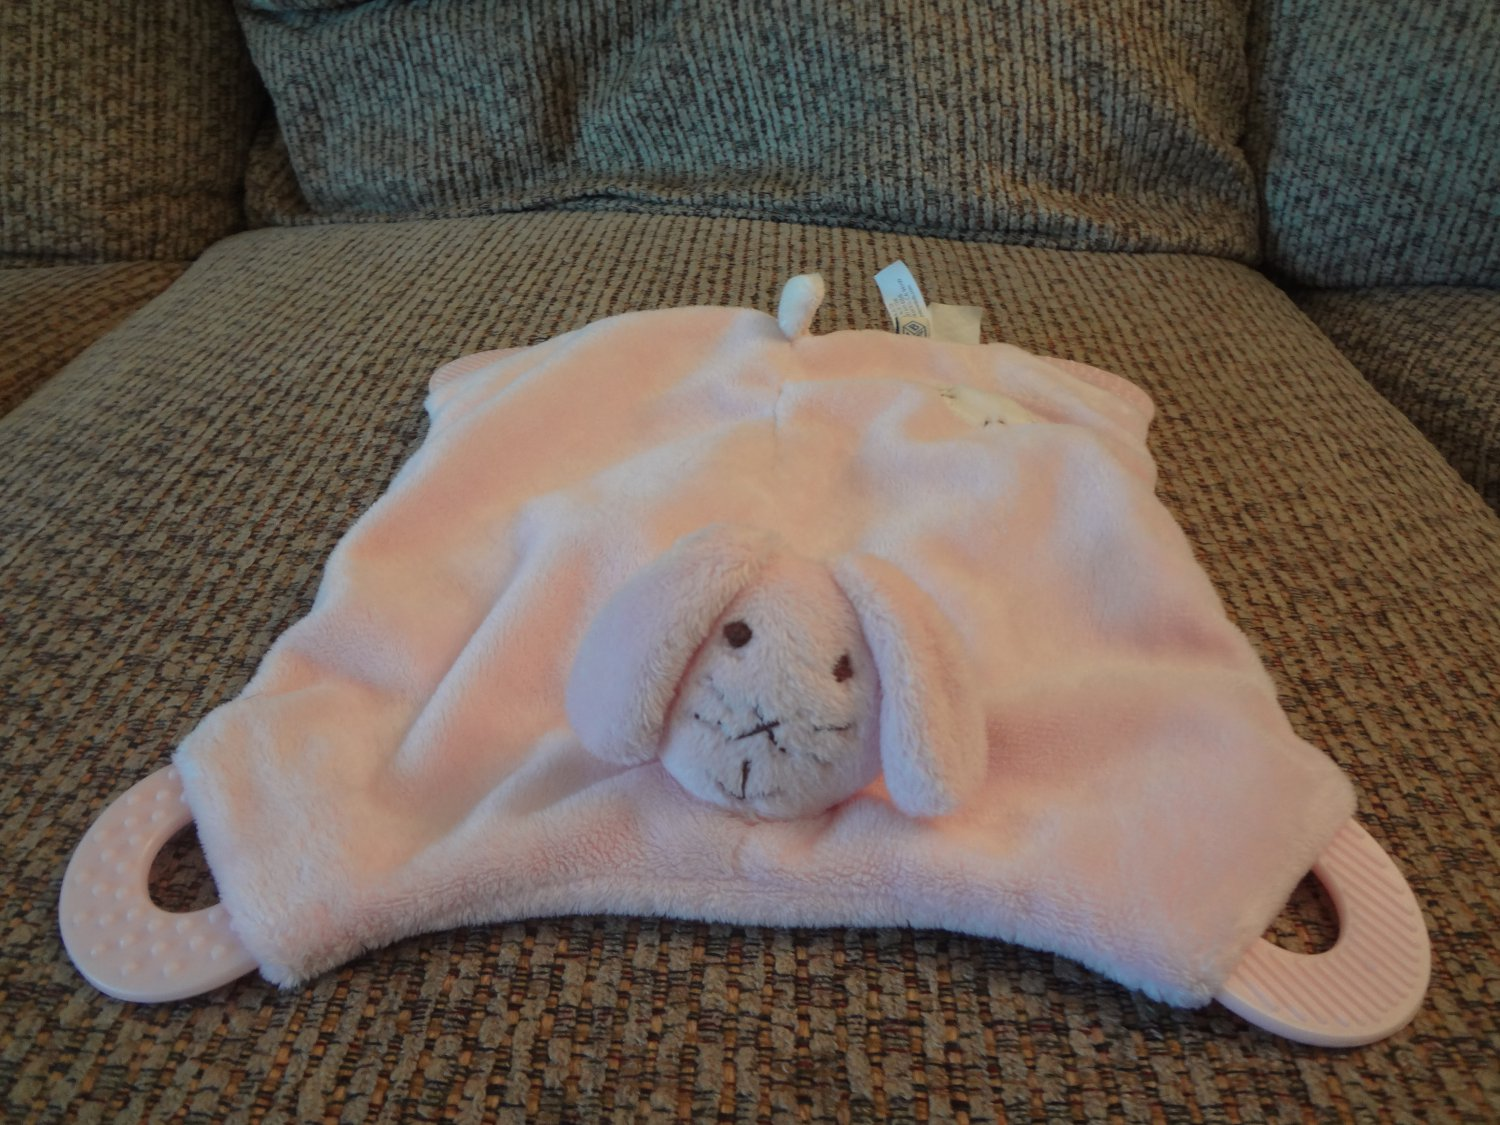 Pottery Barn Kids Pink Teether White Spot Lovey Bunny Rabbit Security Blanket Plush 8x8